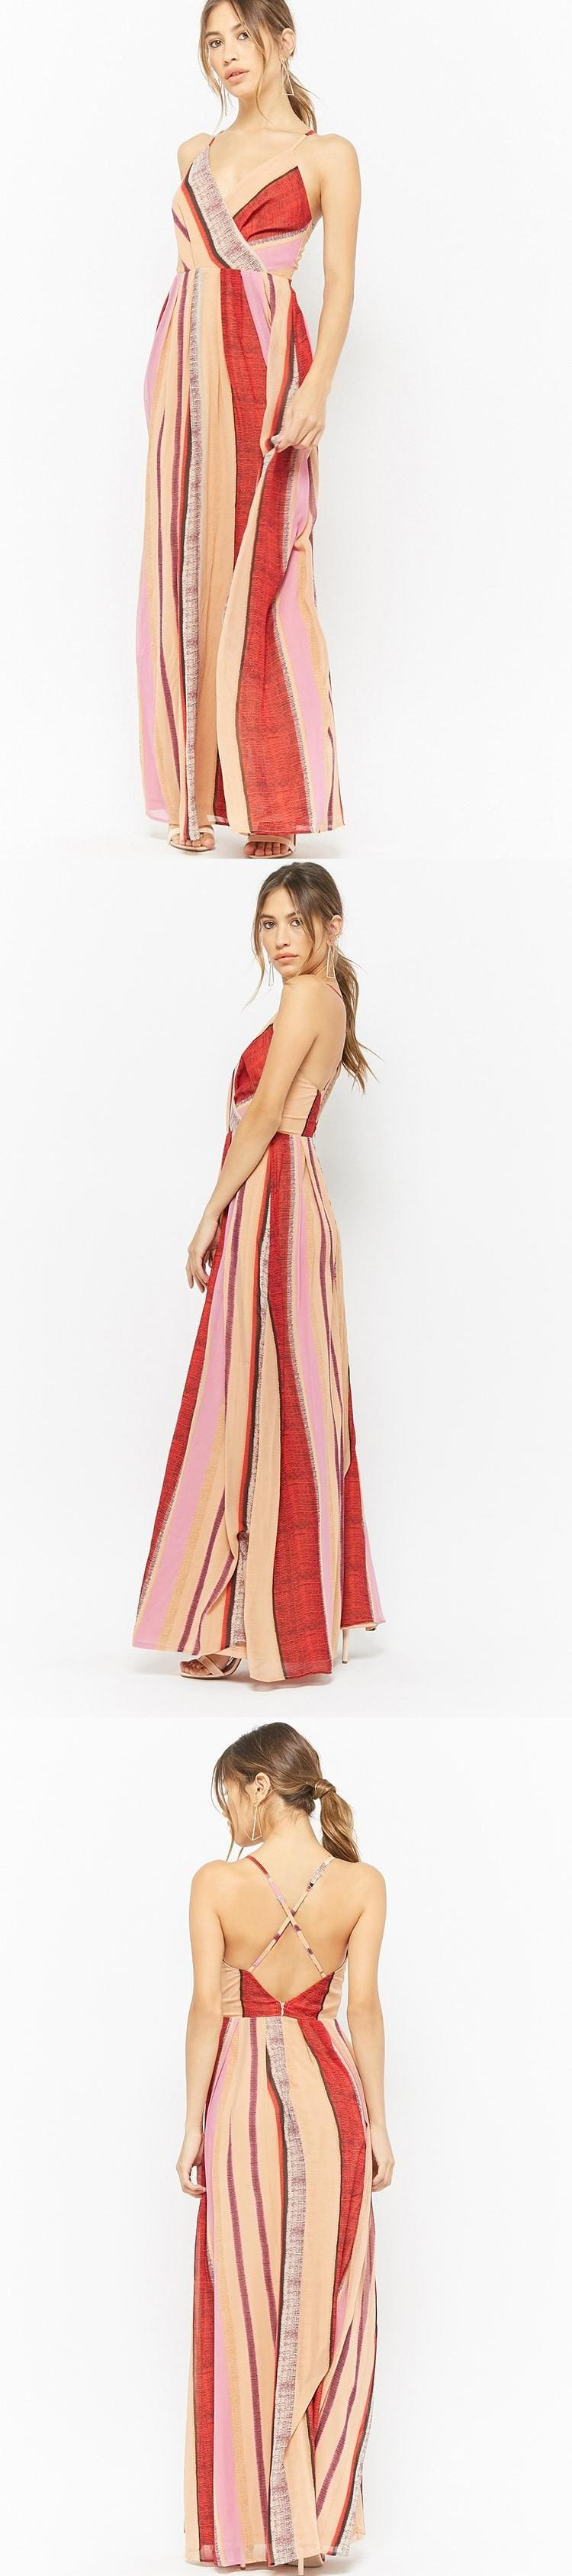 Chiffon striped maxi dress usd forever new forever